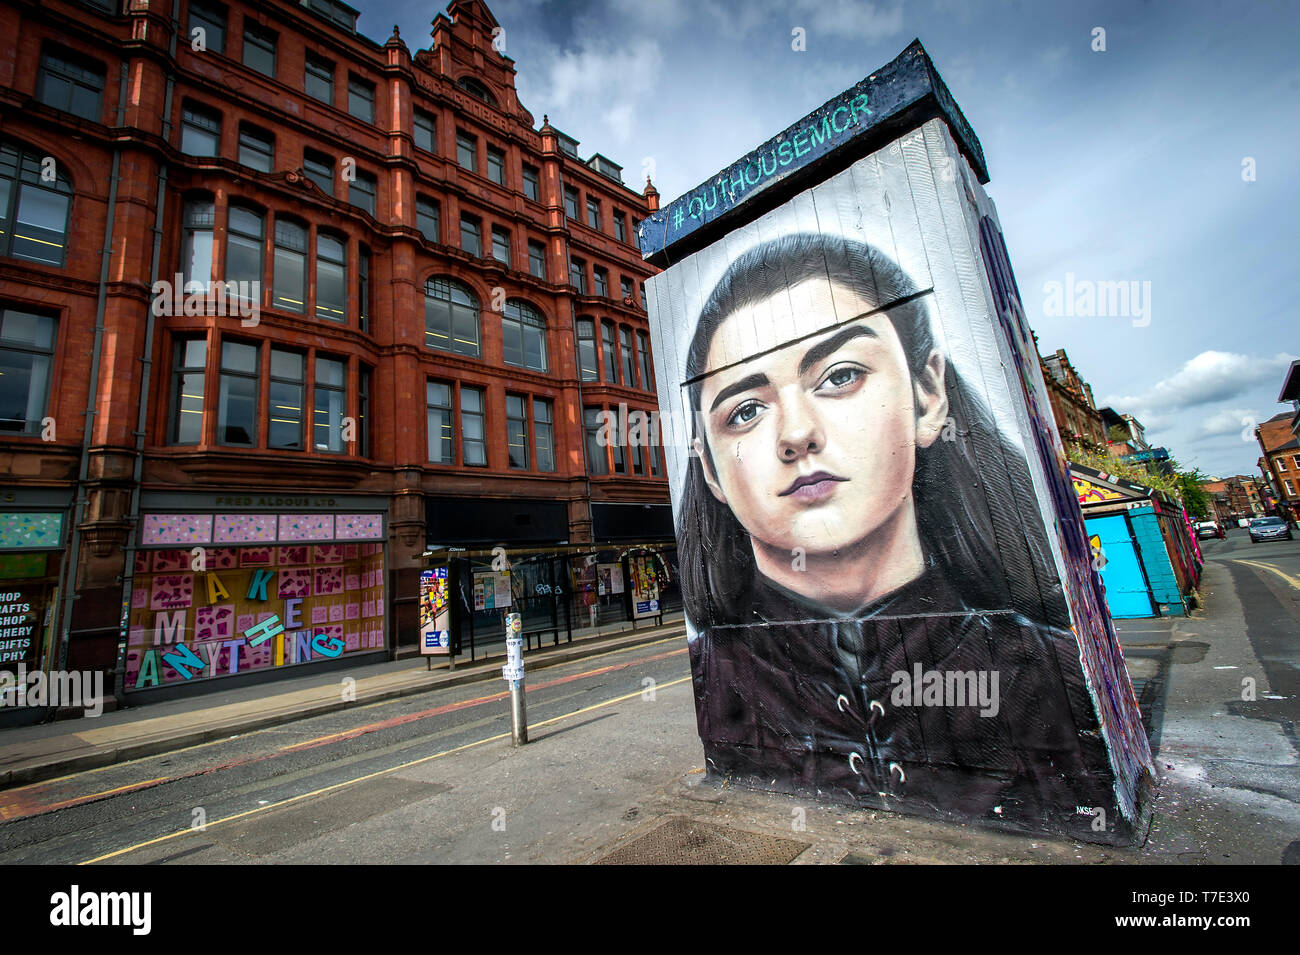 Manchester, UK. 7th May 2019. A new piece of street art has appeared in Stevenson Square in the Northern Quarter of Manchester, UK. The art work depicts the Game of Thrones character Arya Stark, played by actress Maisie Williams, and was created by artist Akse, the French-born street artist who has been living and working in Manchester since 1997. It's all part of outdoor public art project Outhouse MCR, which oversees the street art-rich part of the city centre. Credit: Paul Heyes/Alamy Live News - Stock Image